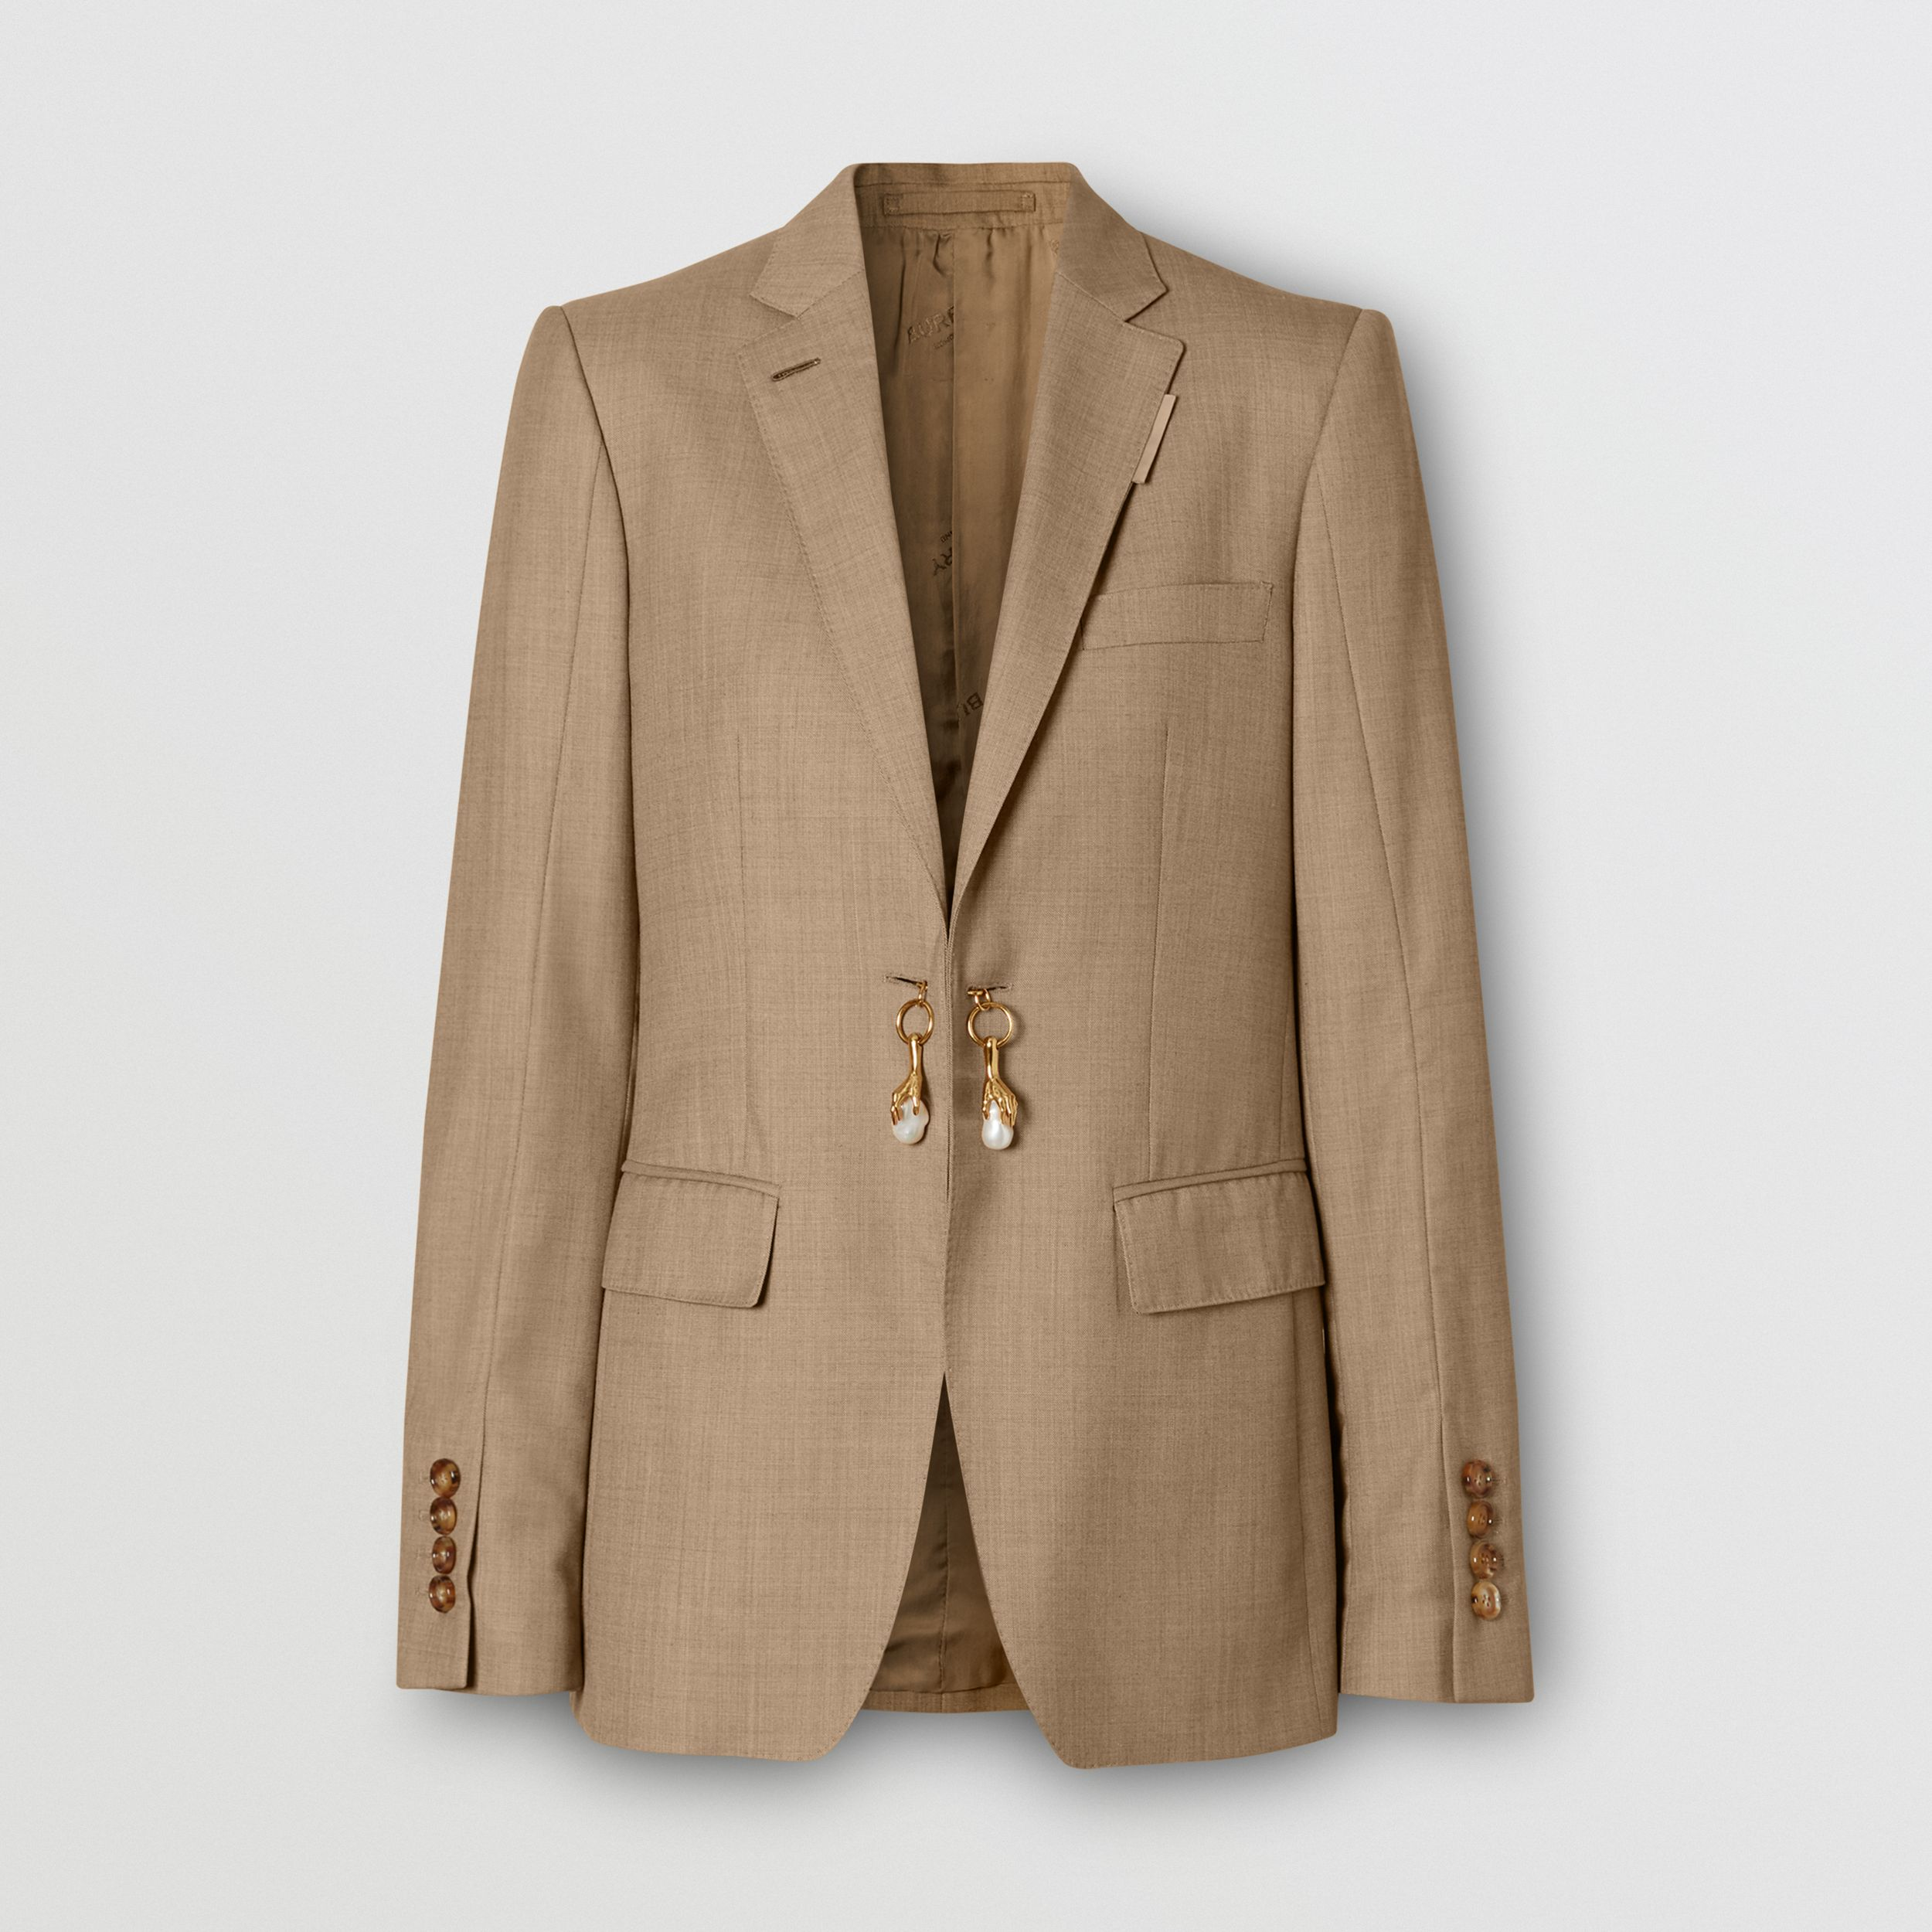 Link Detail Wool Cashmere Blazer in Pecan Melange - Women | Burberry - 4